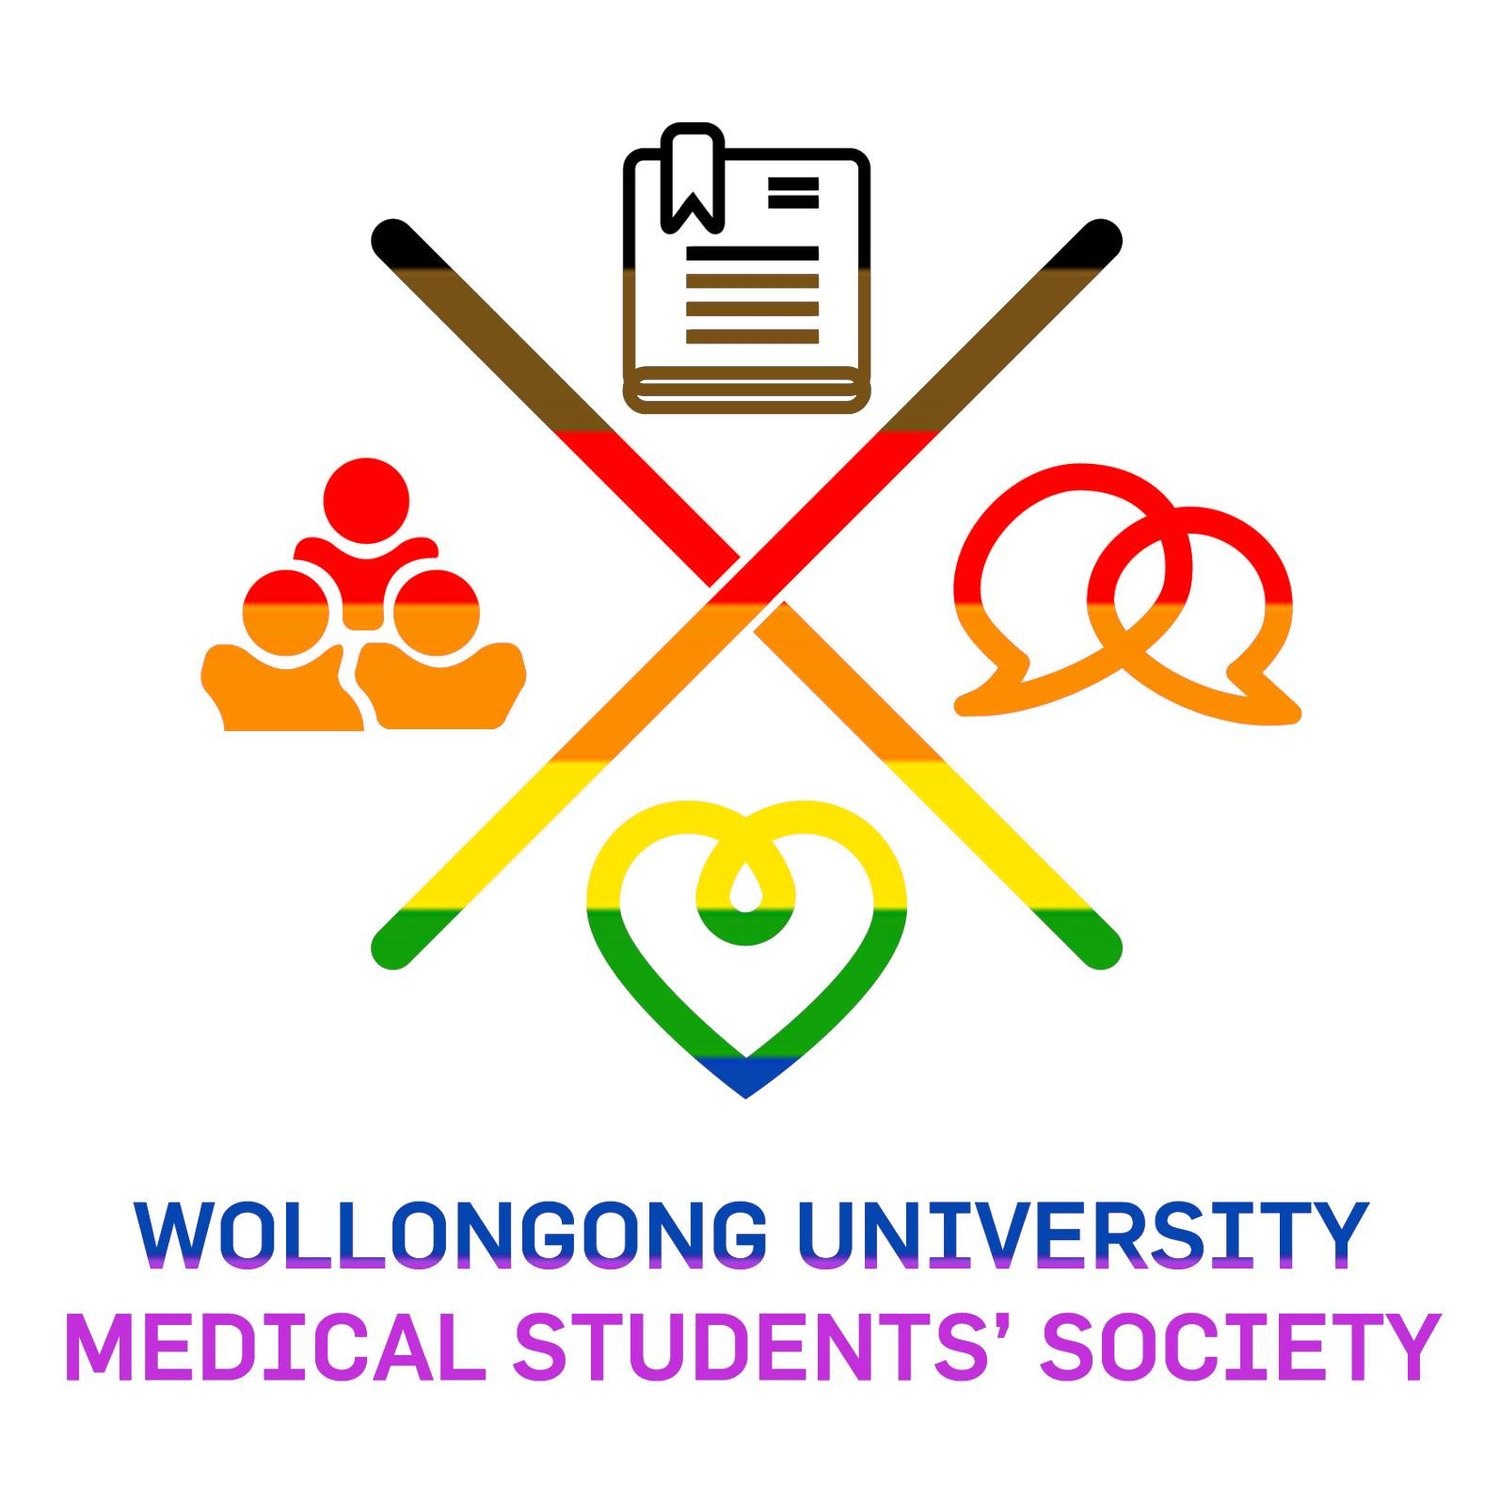 Wollongong University Medical Students' Society